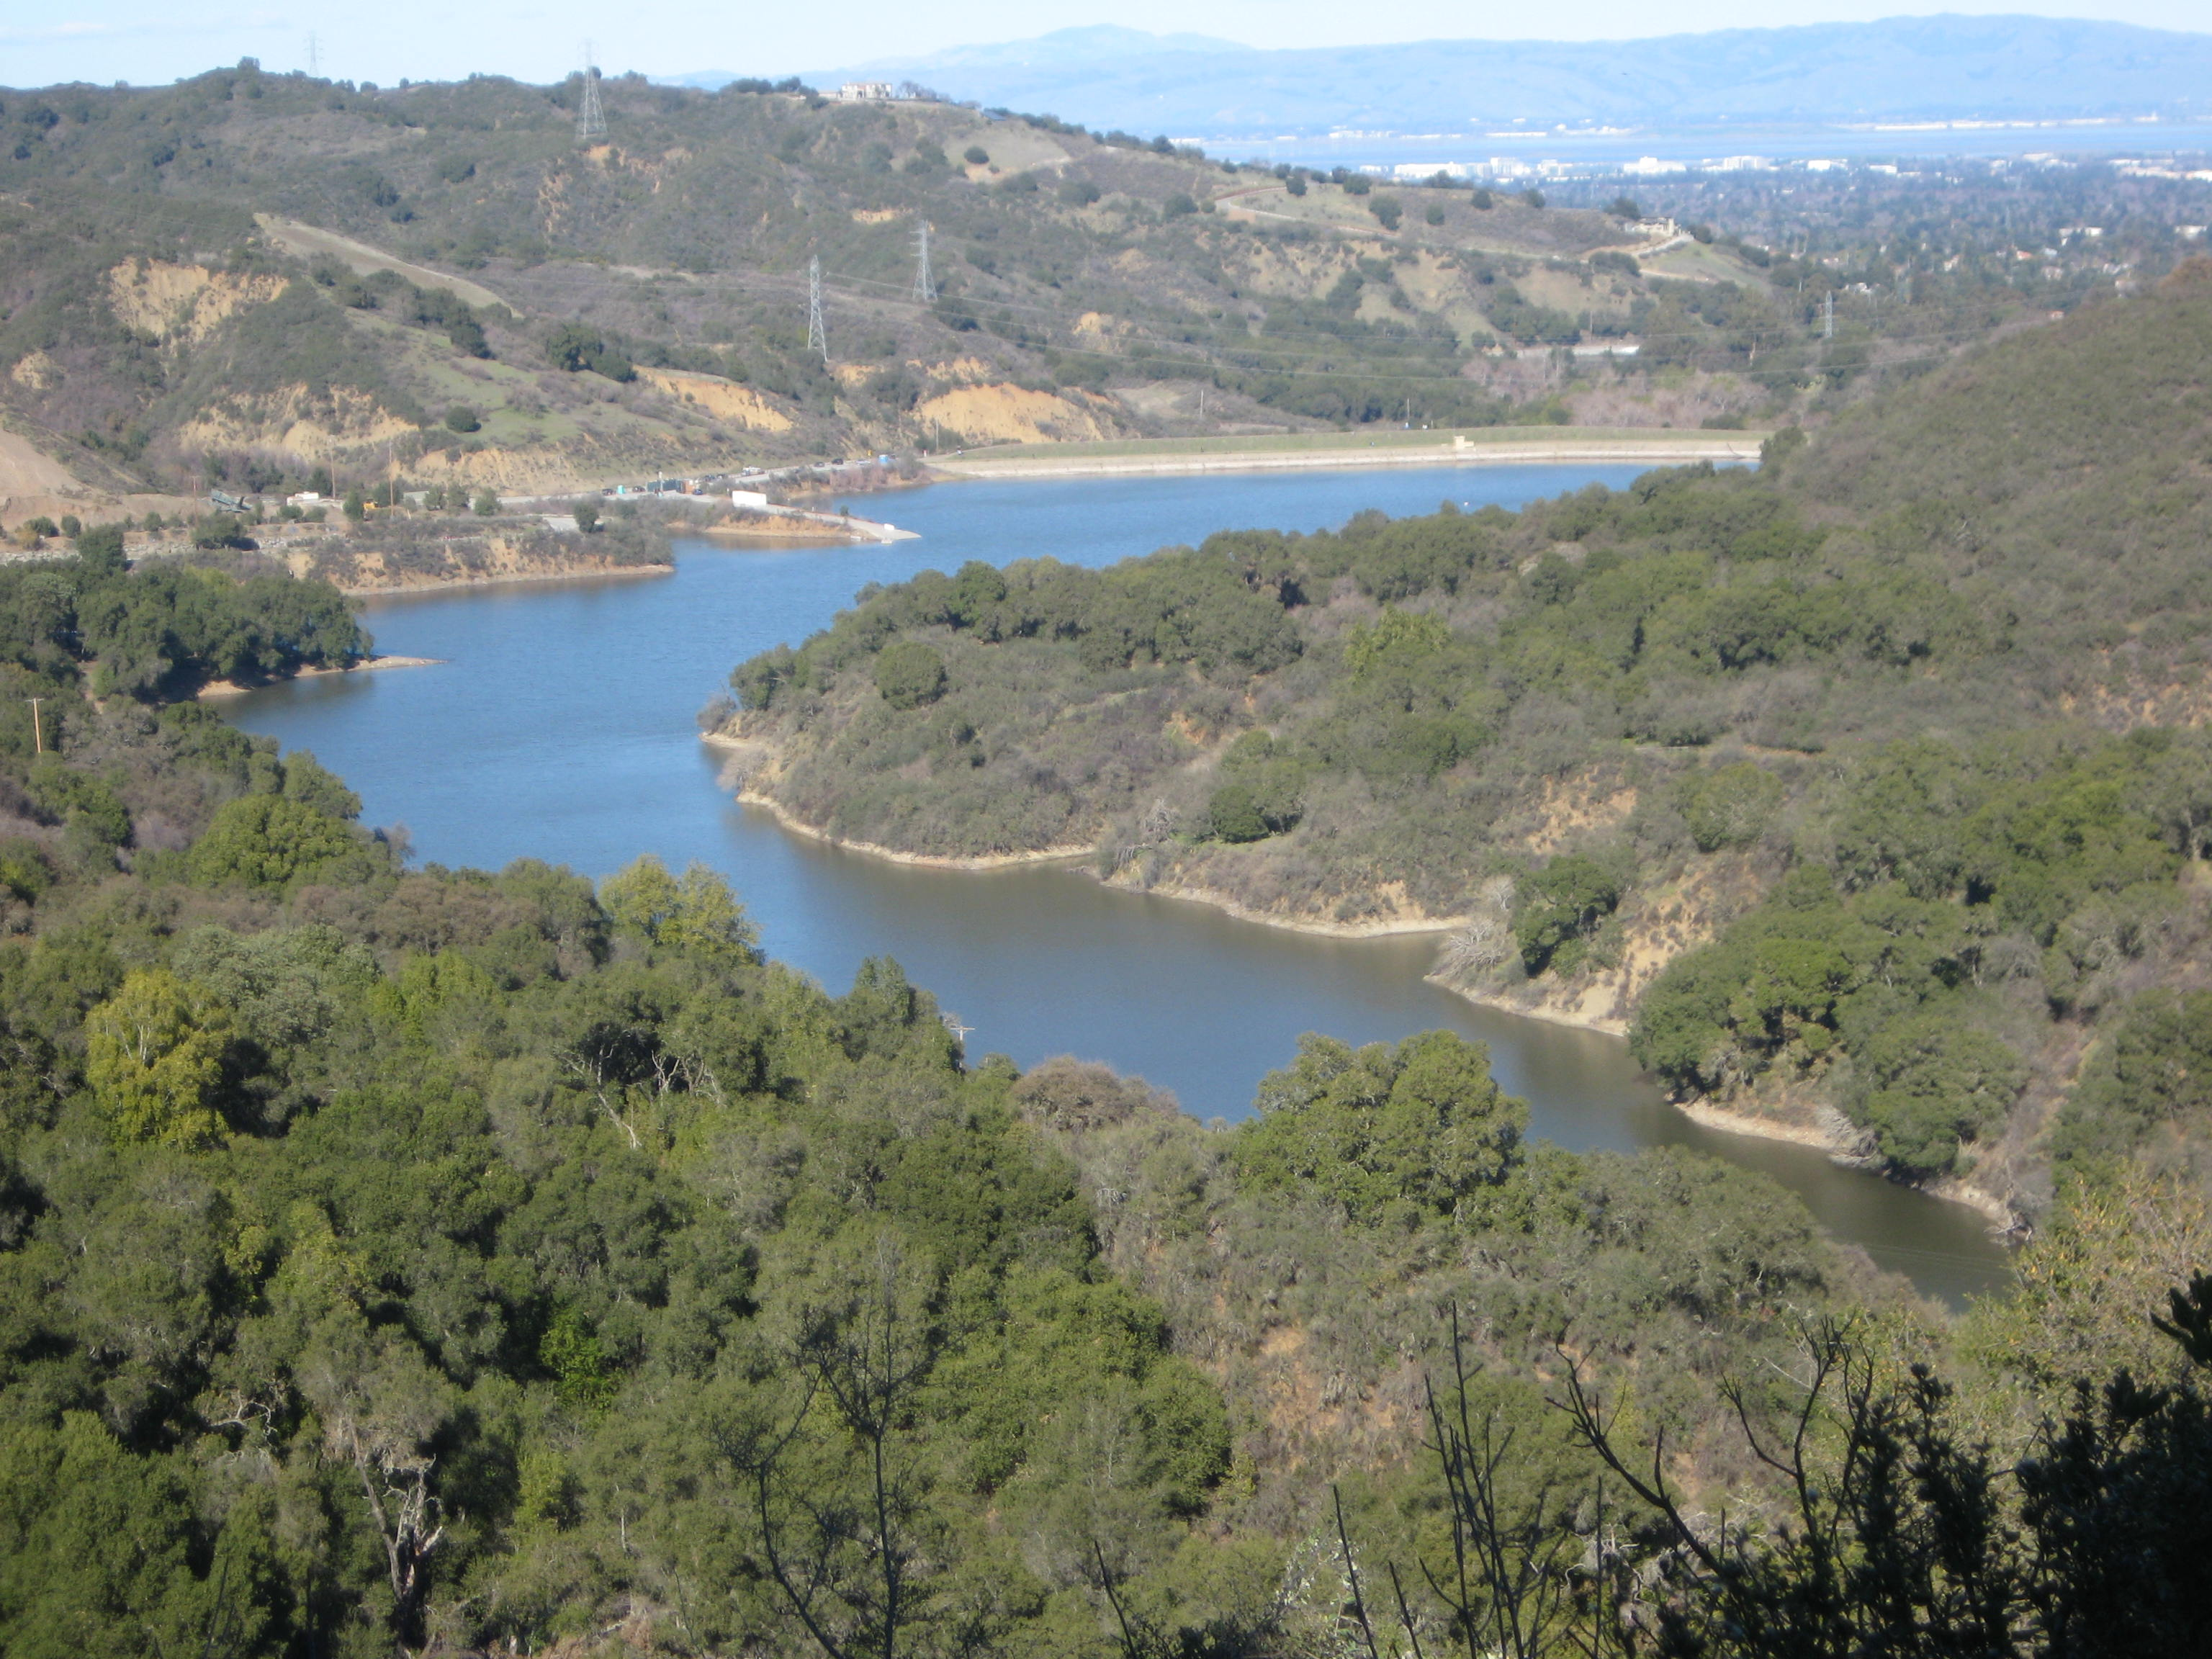 stevens creek reservoir and county park